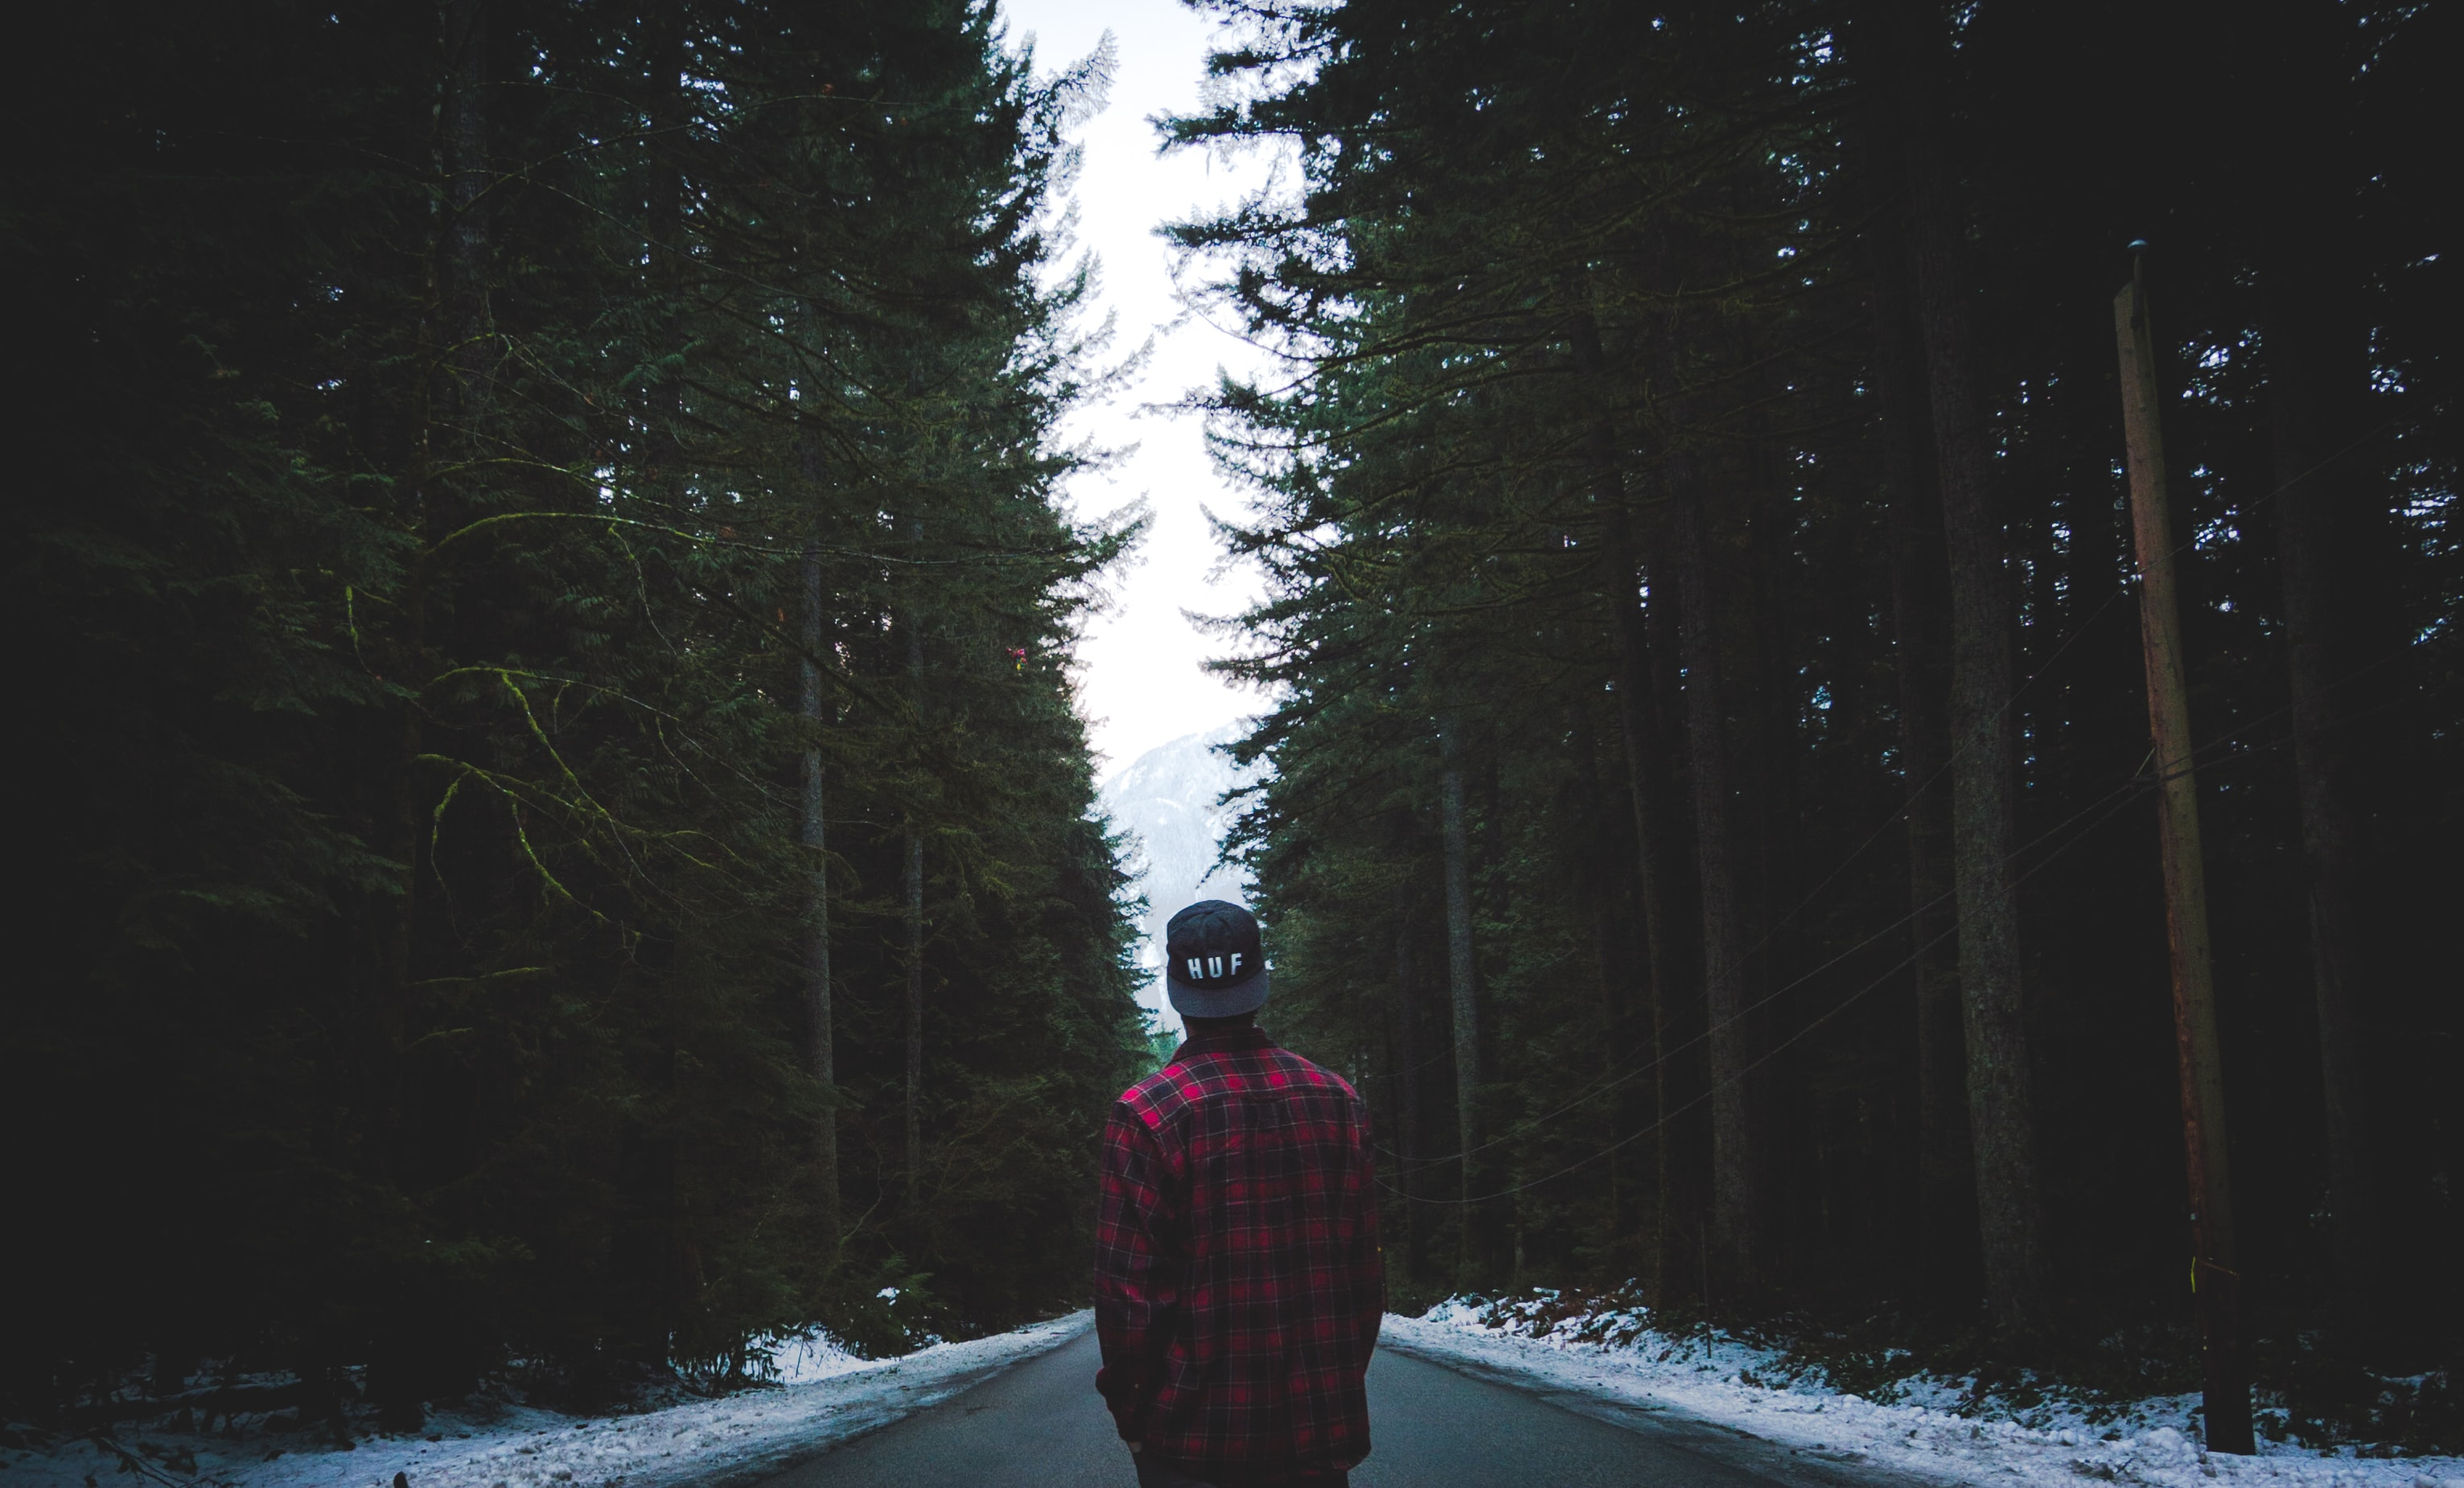 85. Middle stuck stories